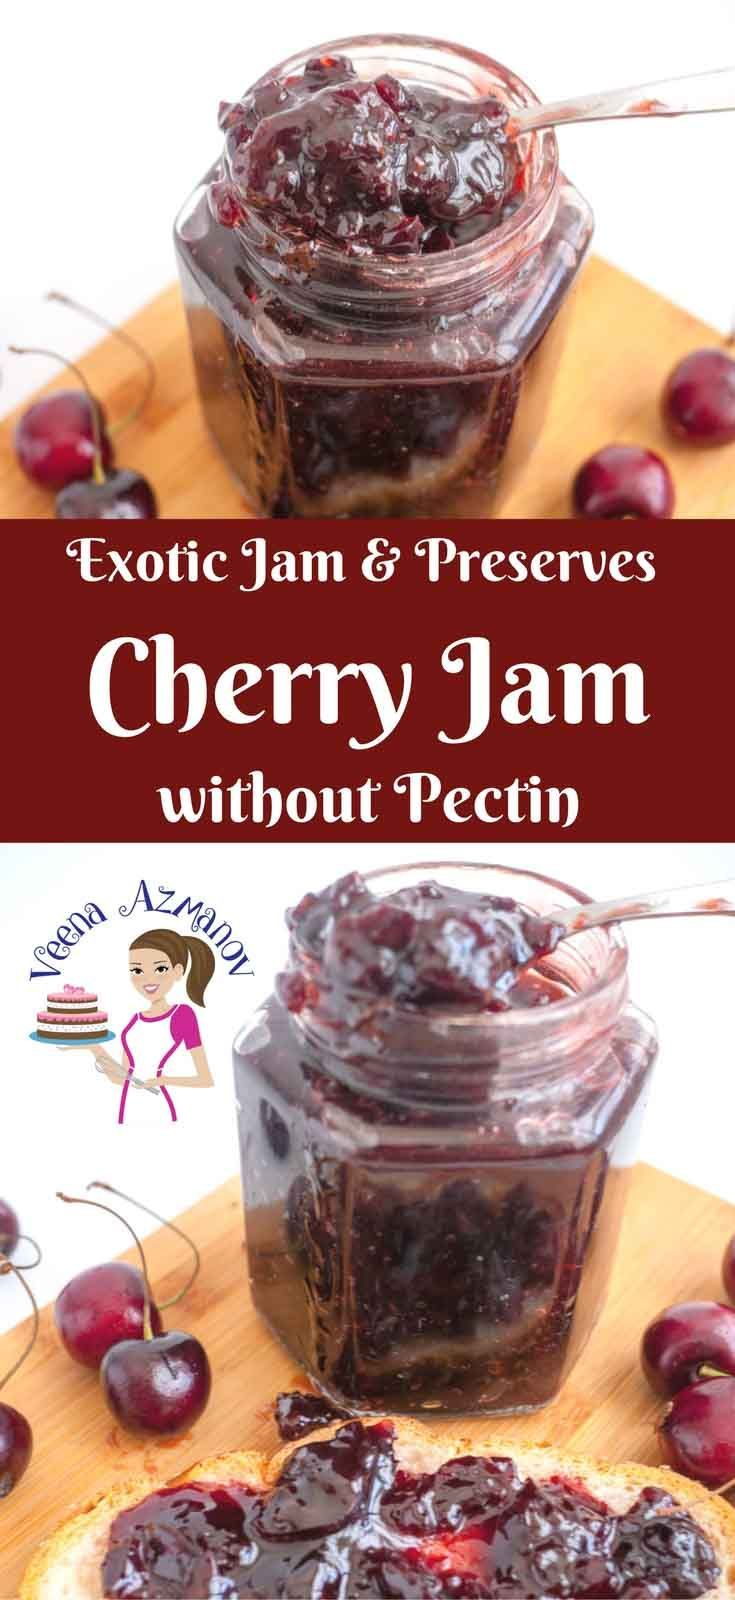 Making jam at home is an absolute treat and worth spending the time on. You don't have to make big batches nor do you have to can every jam. Here I make a small batch of good wholesome homemade all natural Cherry jam without pectin or preservatives and you don't even have to can it to enjoy it.